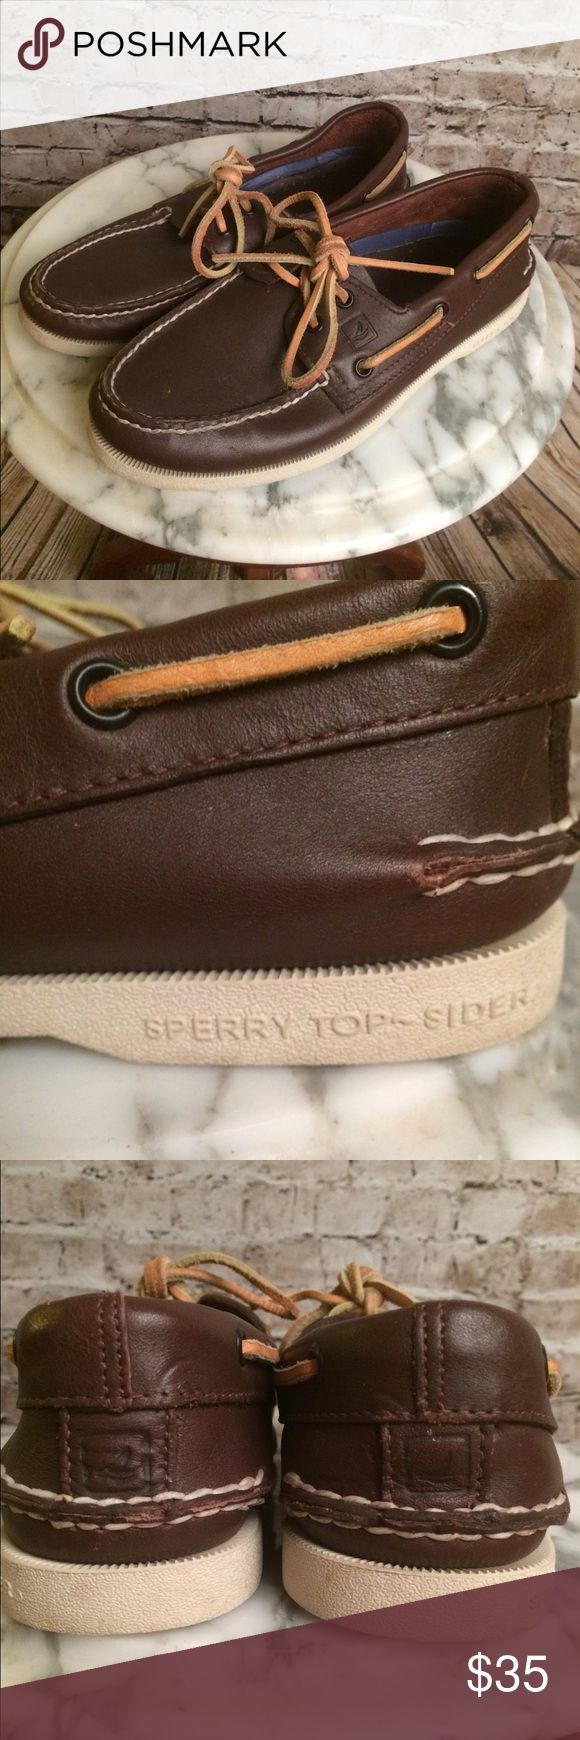 Sperry TOPSIDER Dark Brown Boat shoes loafers Sperry TOPSIDER Dark Brown Boat shoes loafers.  Sz 6.5 Sperry Top-Sider Shoes Flats & Loafers